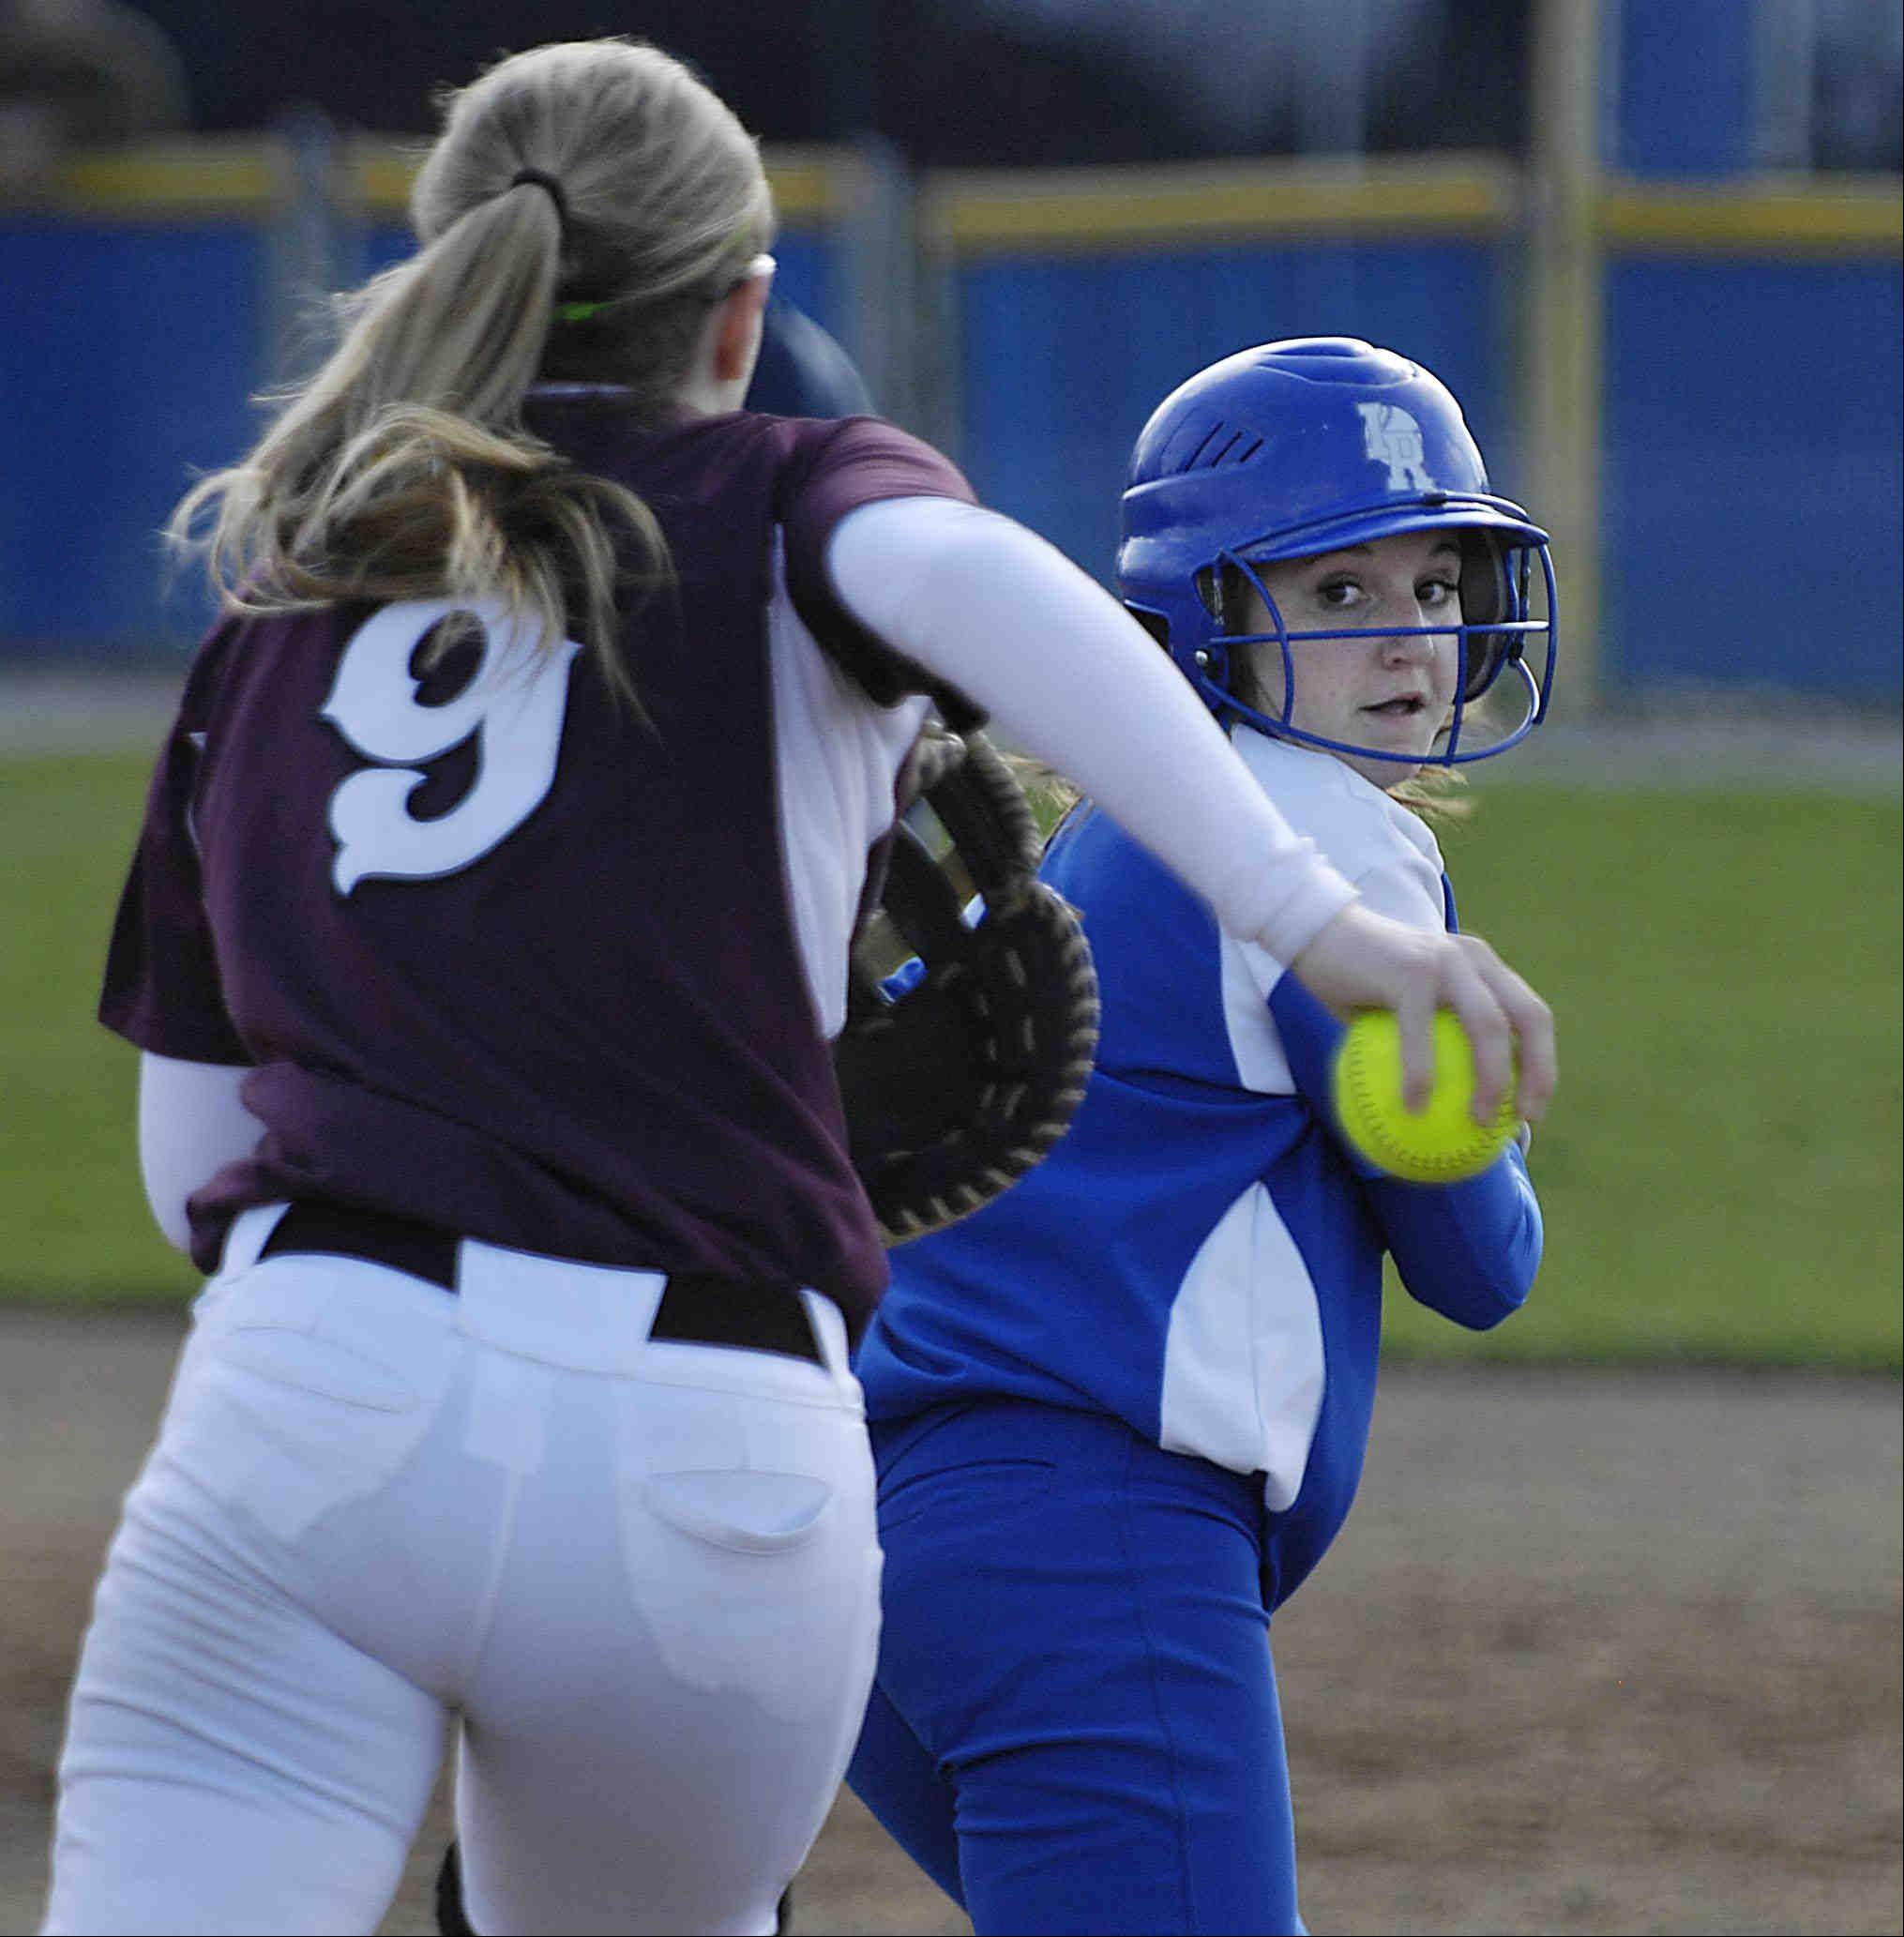 Elgin first baseman Monica Stockman chases Larkin's Beka Harrington all the way to second base before tagging her out Wednesday in Elgin.